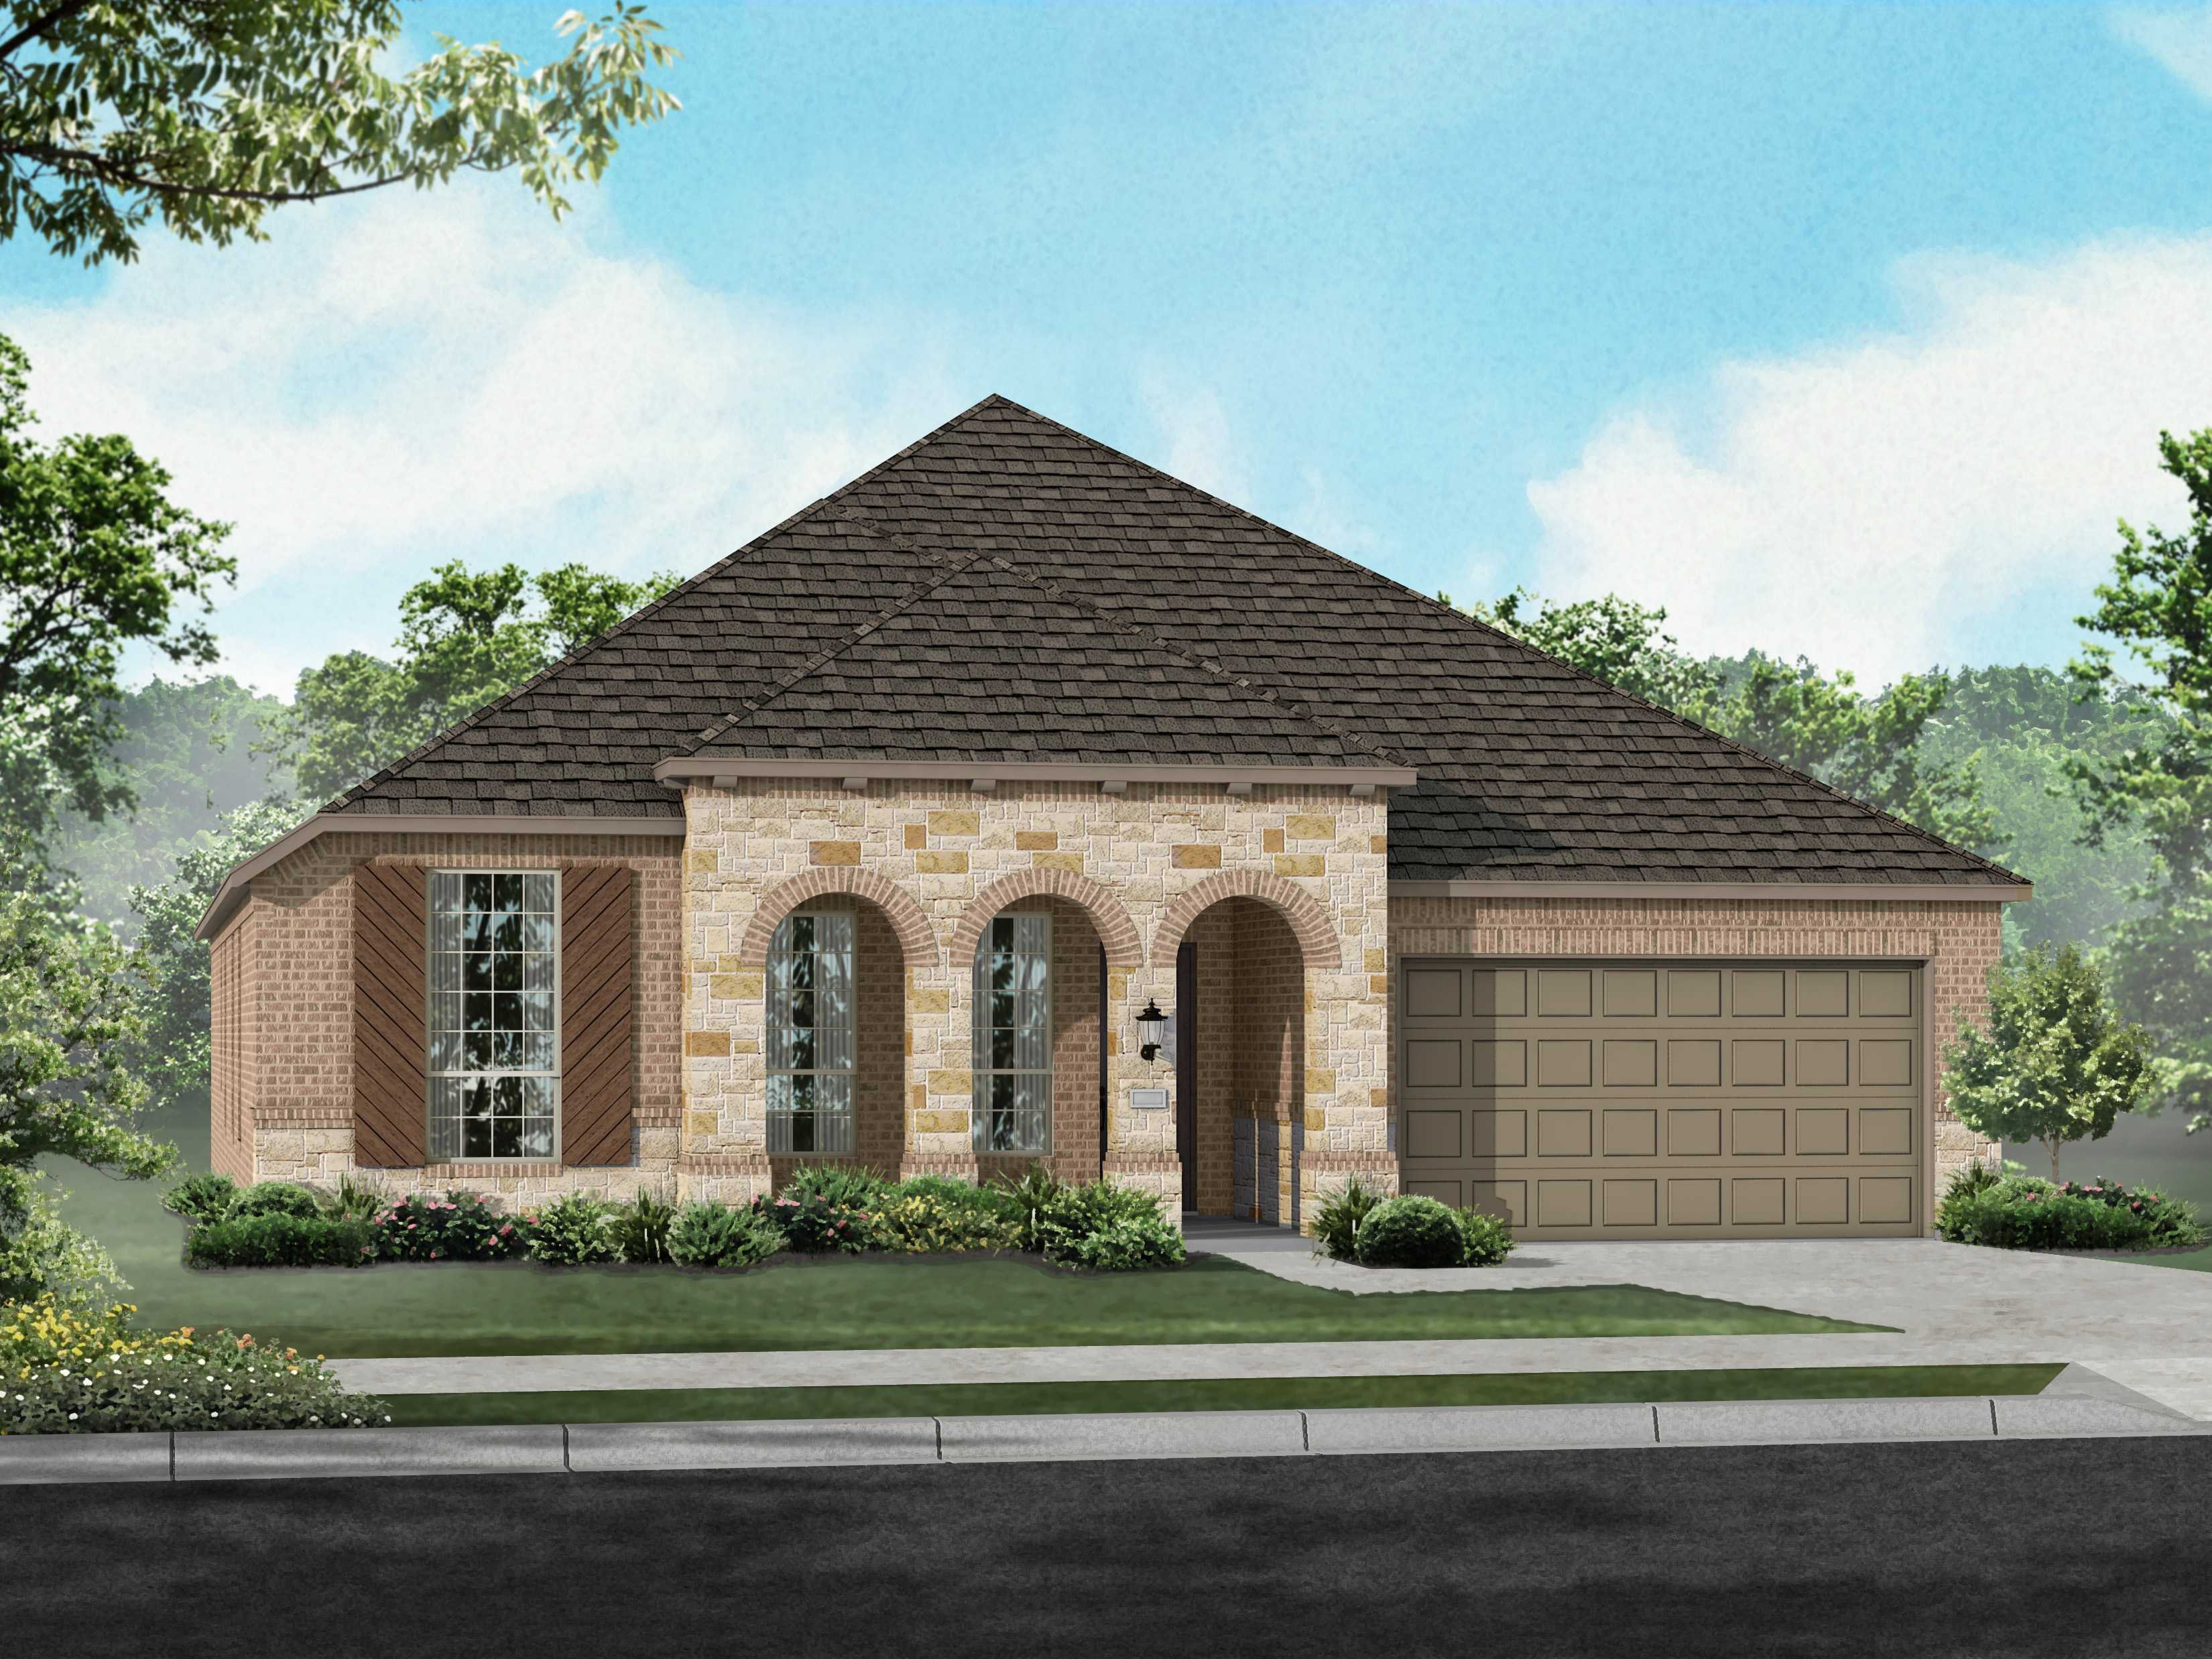 New Construction Homes & Plans in Caddo Mills, TX | 2,418